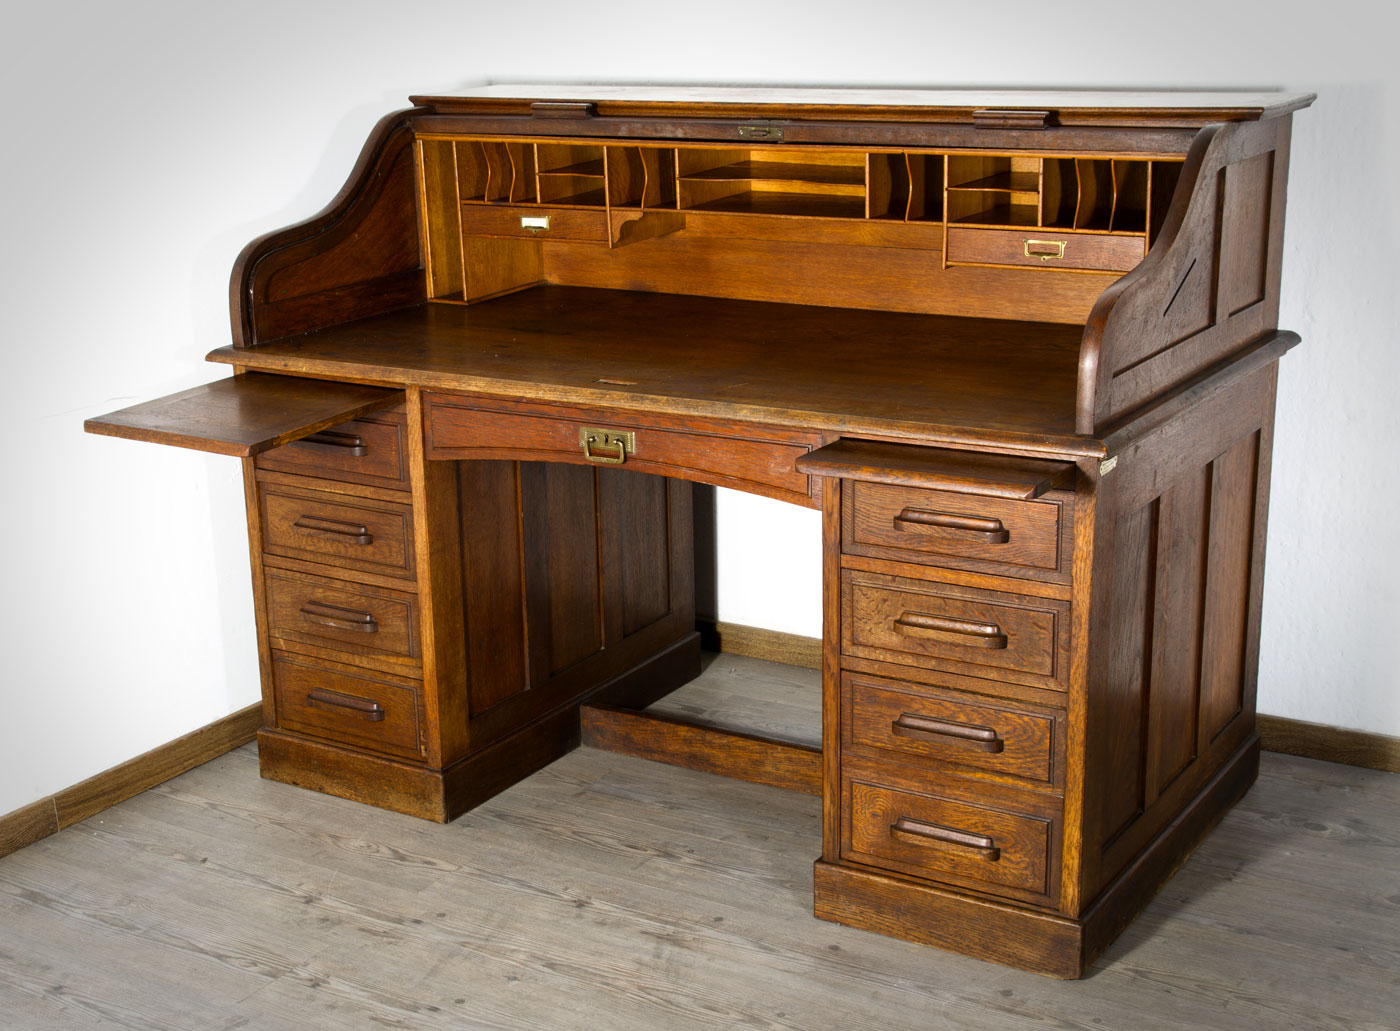 roll top writing desk Solid wood double pedestal roll top desk - 54w $2,9842984 save 13% | free shipping solid oak compact roll top desk - 29w, hau-263bbr compare solid oak compact roll top desk - 29w $1,3691369 save 9% | free shipping compact solid wood roll top writing desk - 29w, hau-268bbr compare.